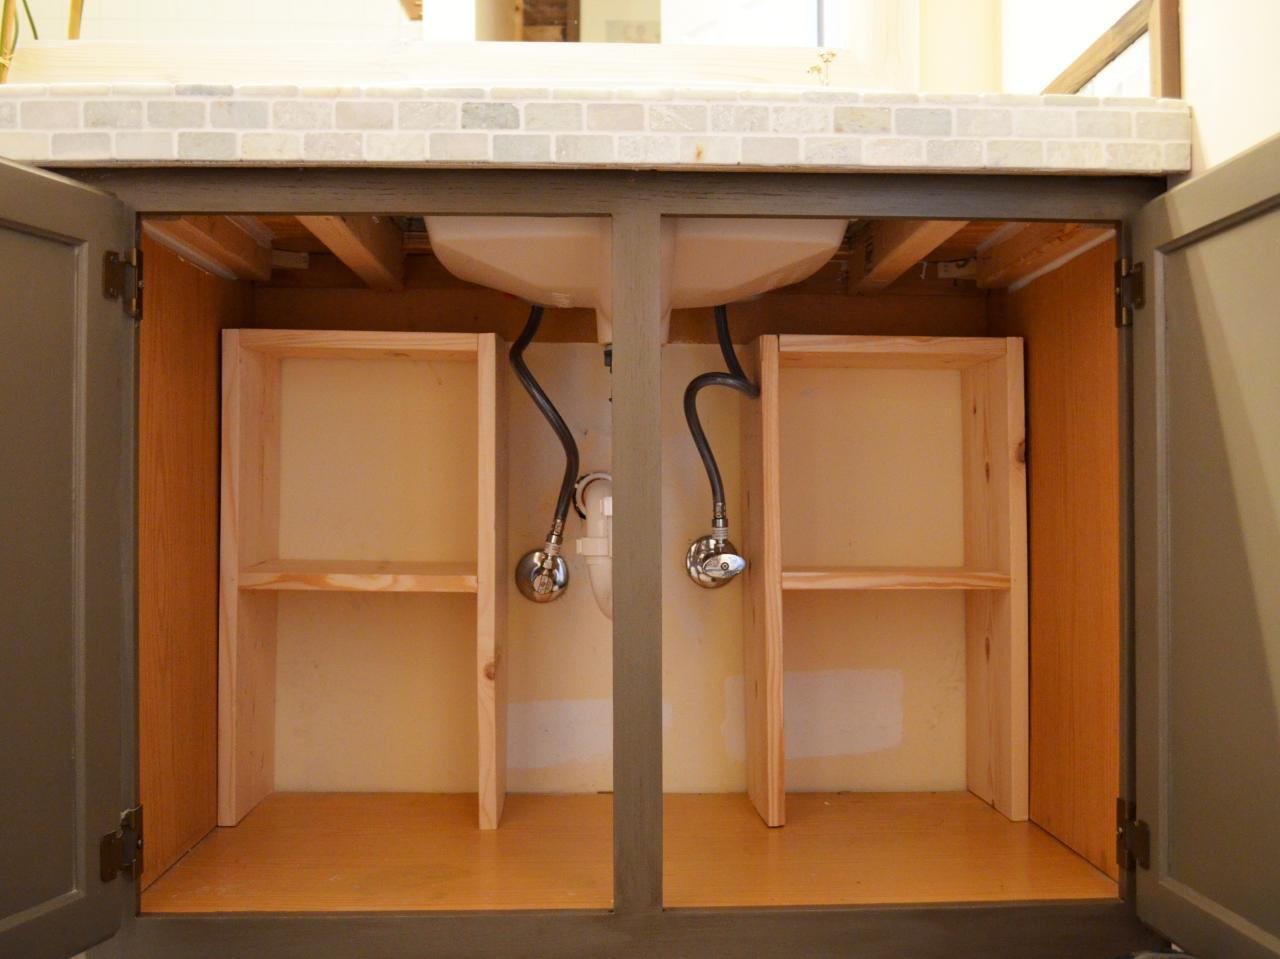 A step by step guide for creating storage under the sink Kitchen under cabinet storage ideas